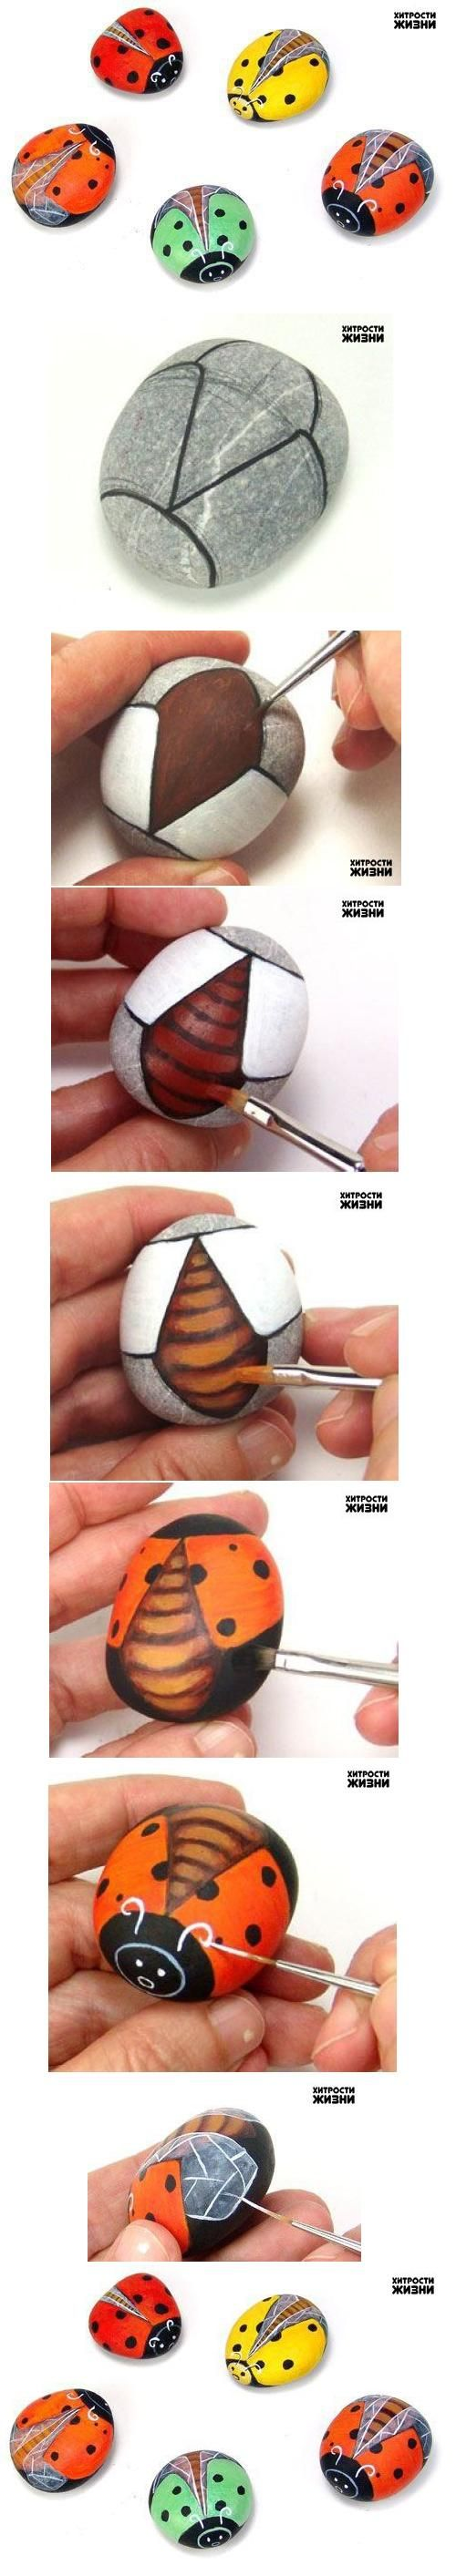 DIY Painted Stone Ladybug -this could be a great housewarming party craft idea. Have everyone paint a stone and use them in your new garden.